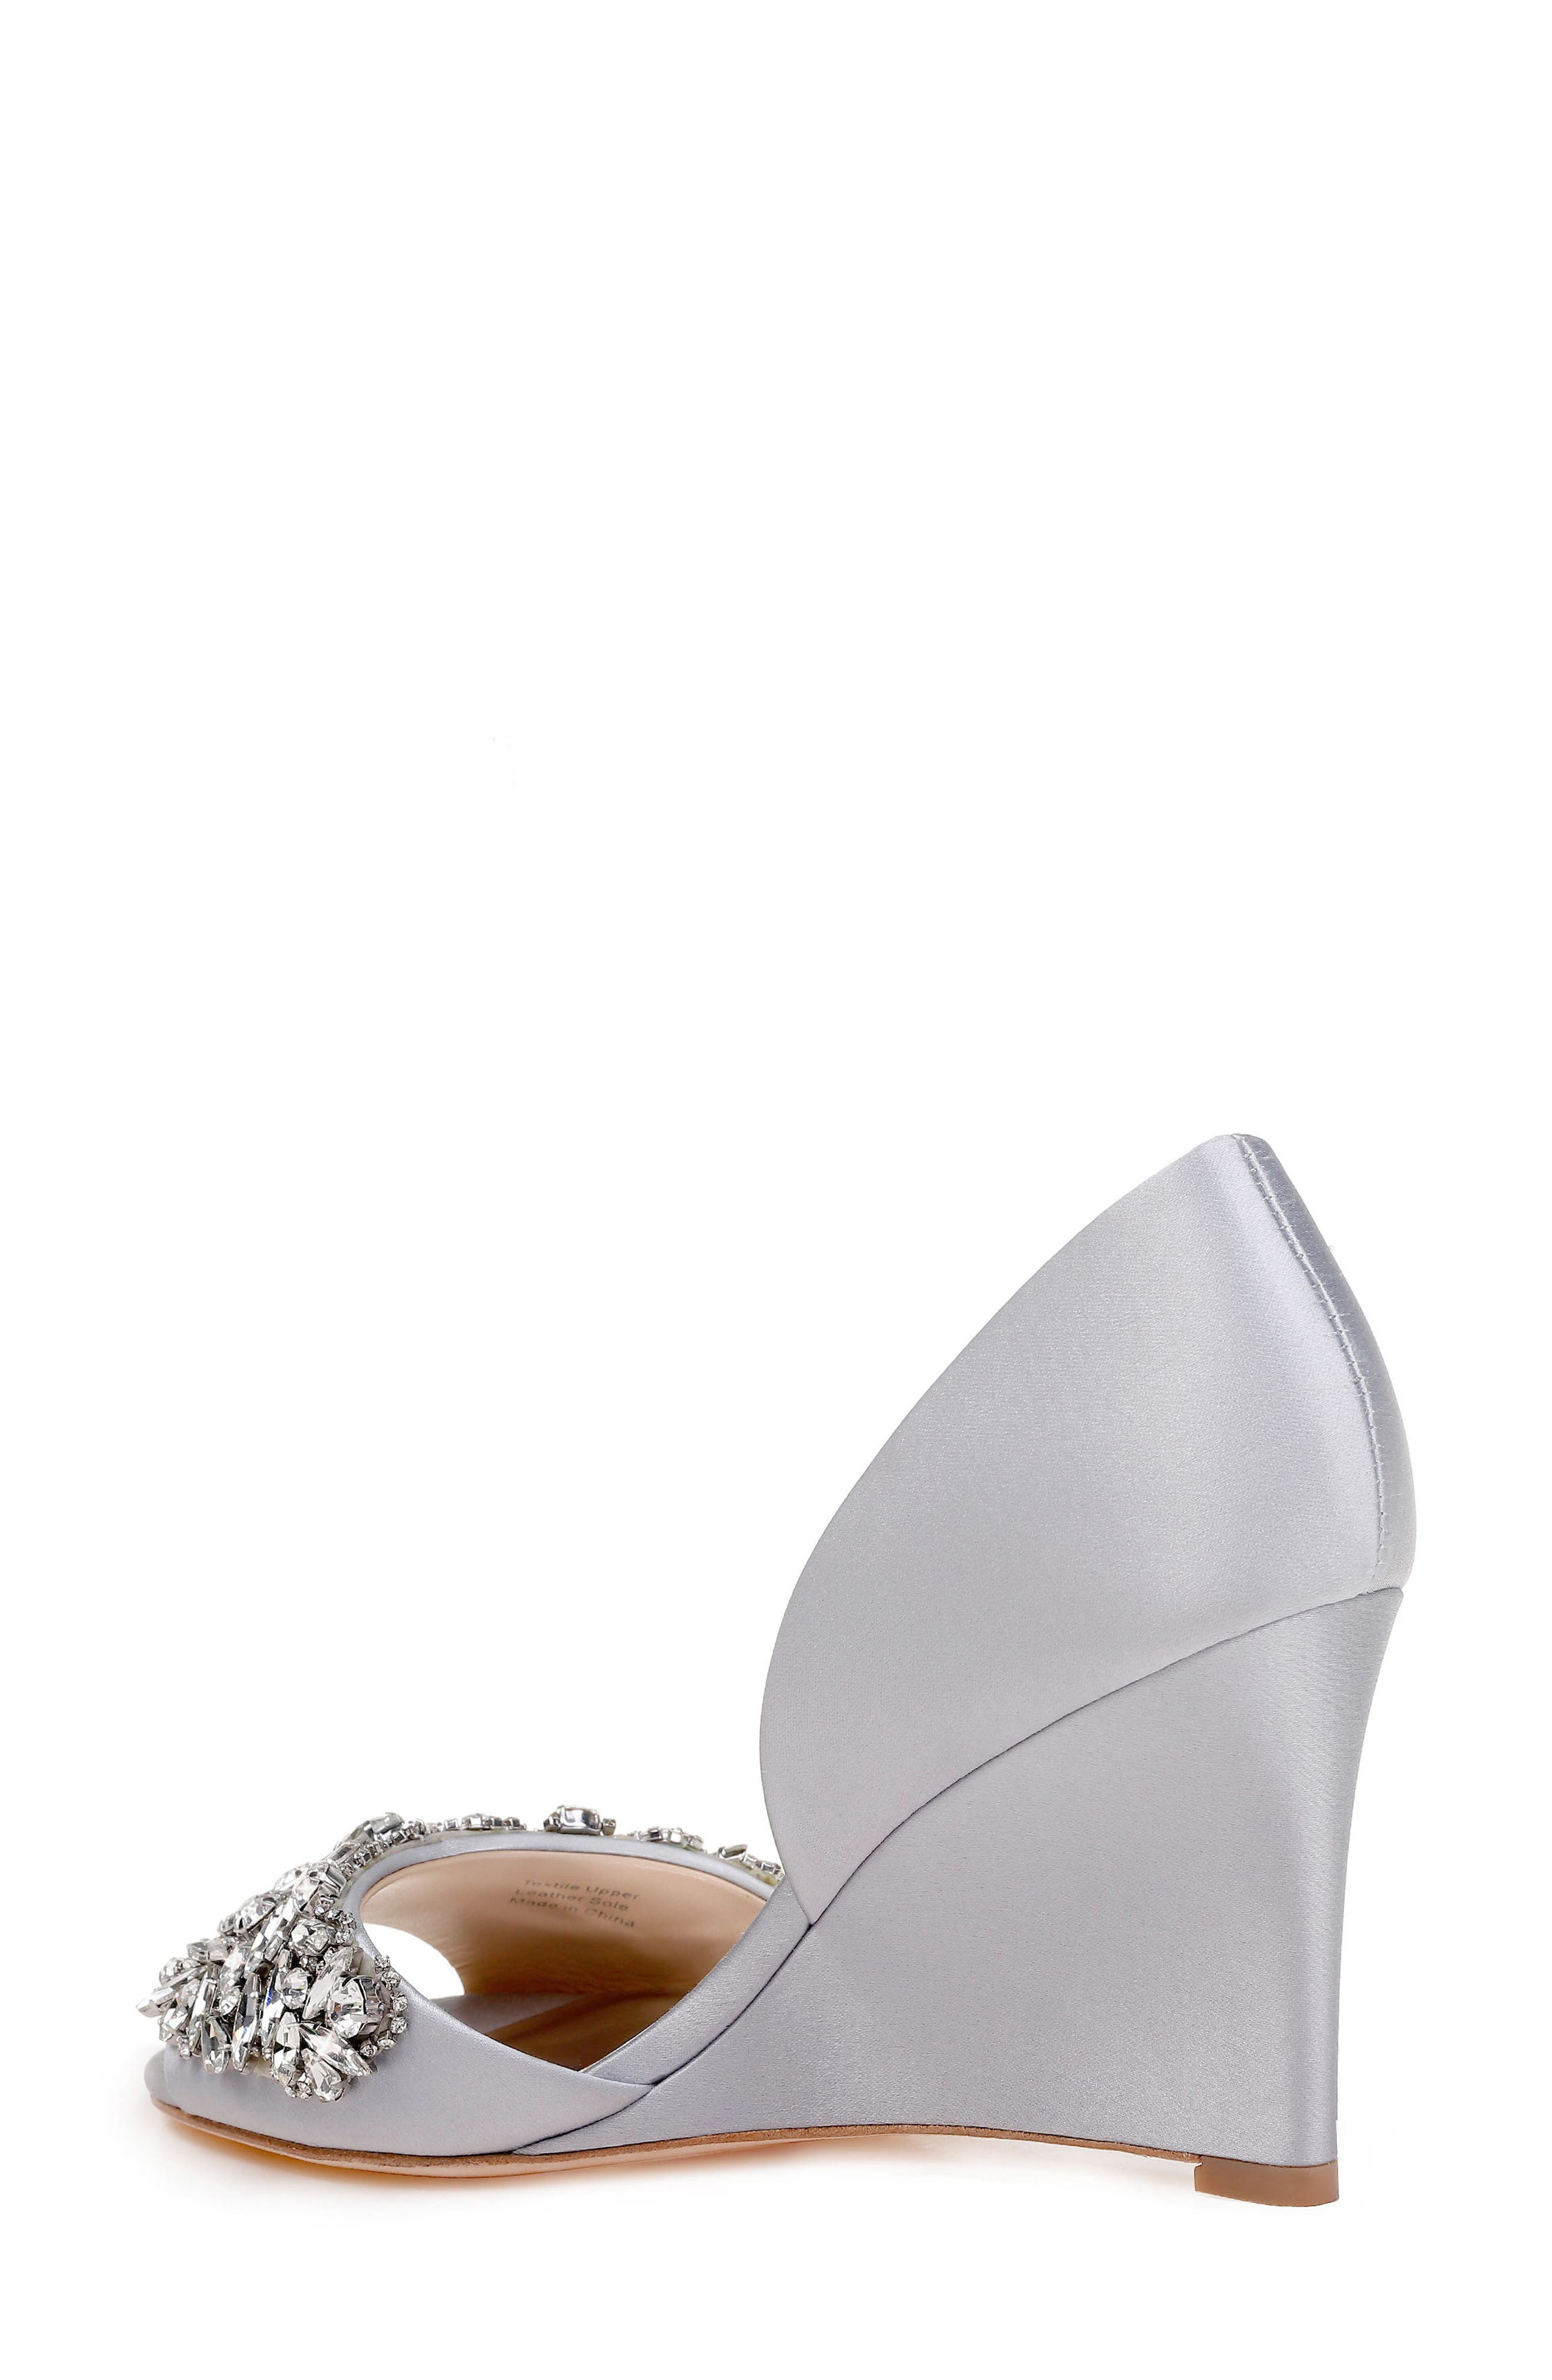 BADGLEY MISCHKA COLLECTION,                             Badgley Mischka Hardy Embellished Wedge,                             Alternate thumbnail 2, color,                             045